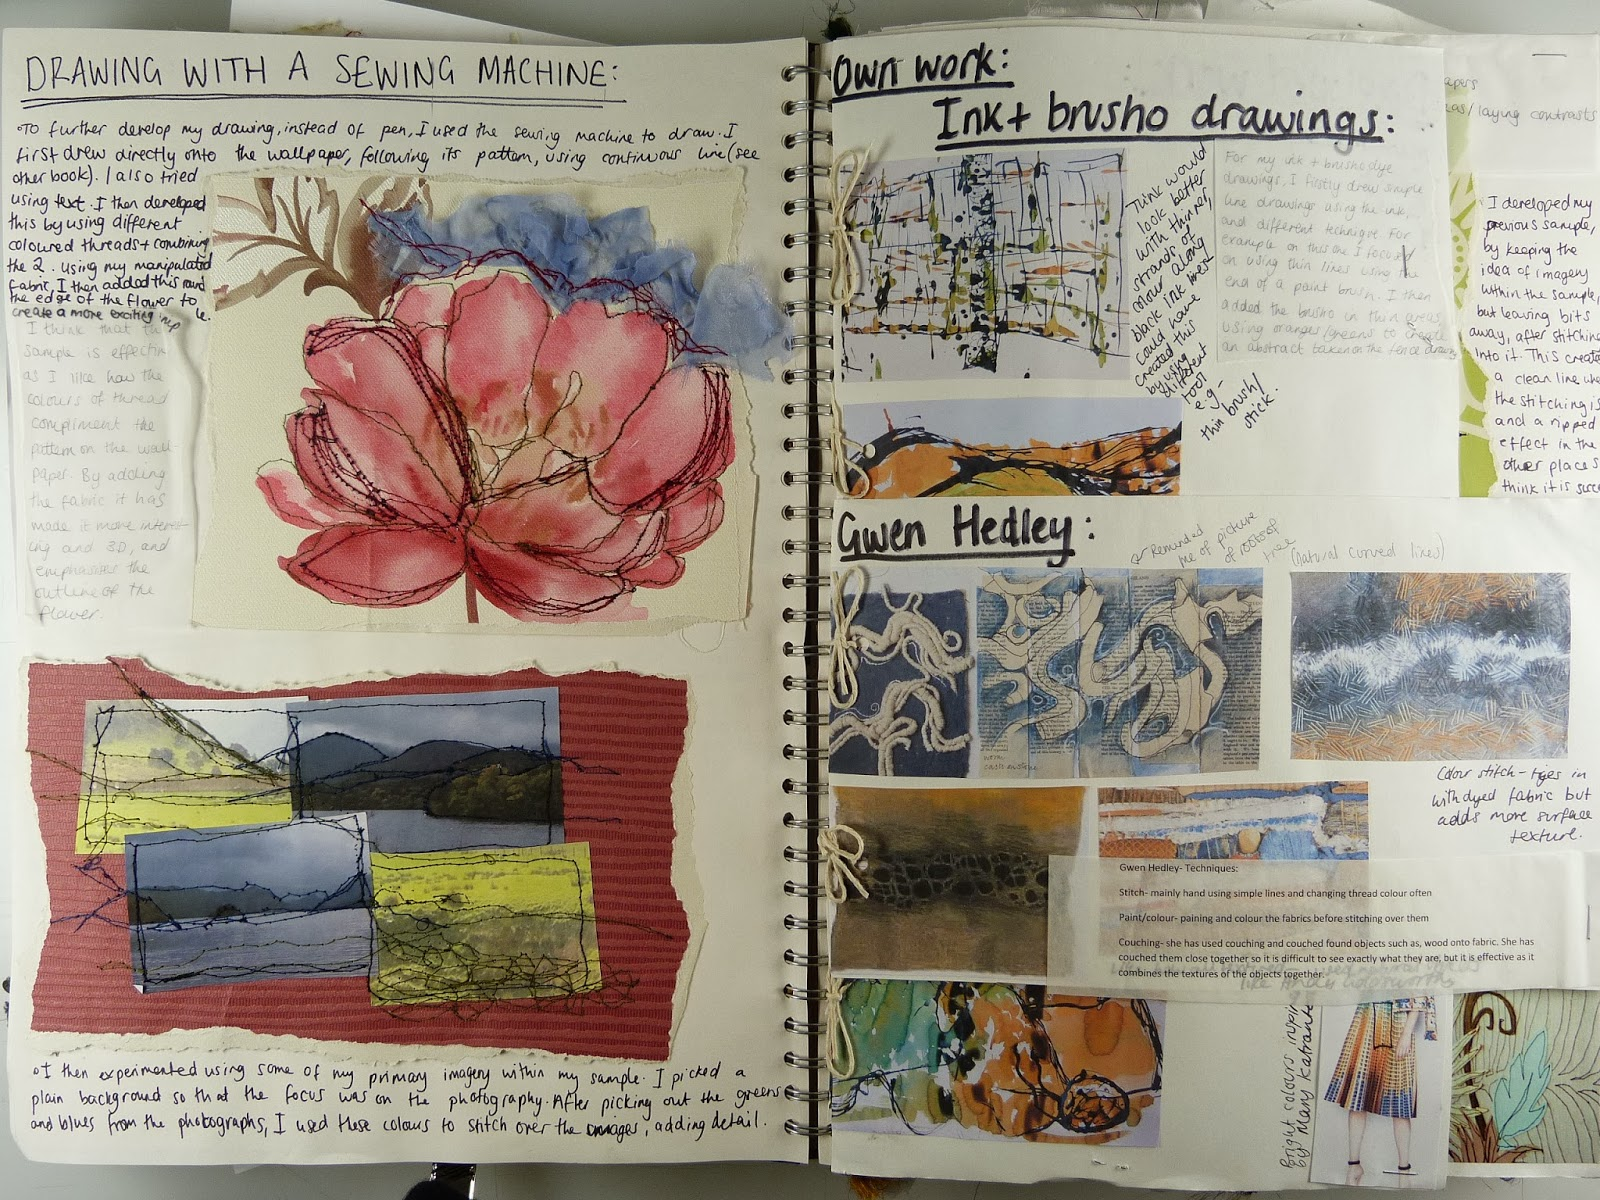 Fashion and art blog: Sketchbook devlopment and research